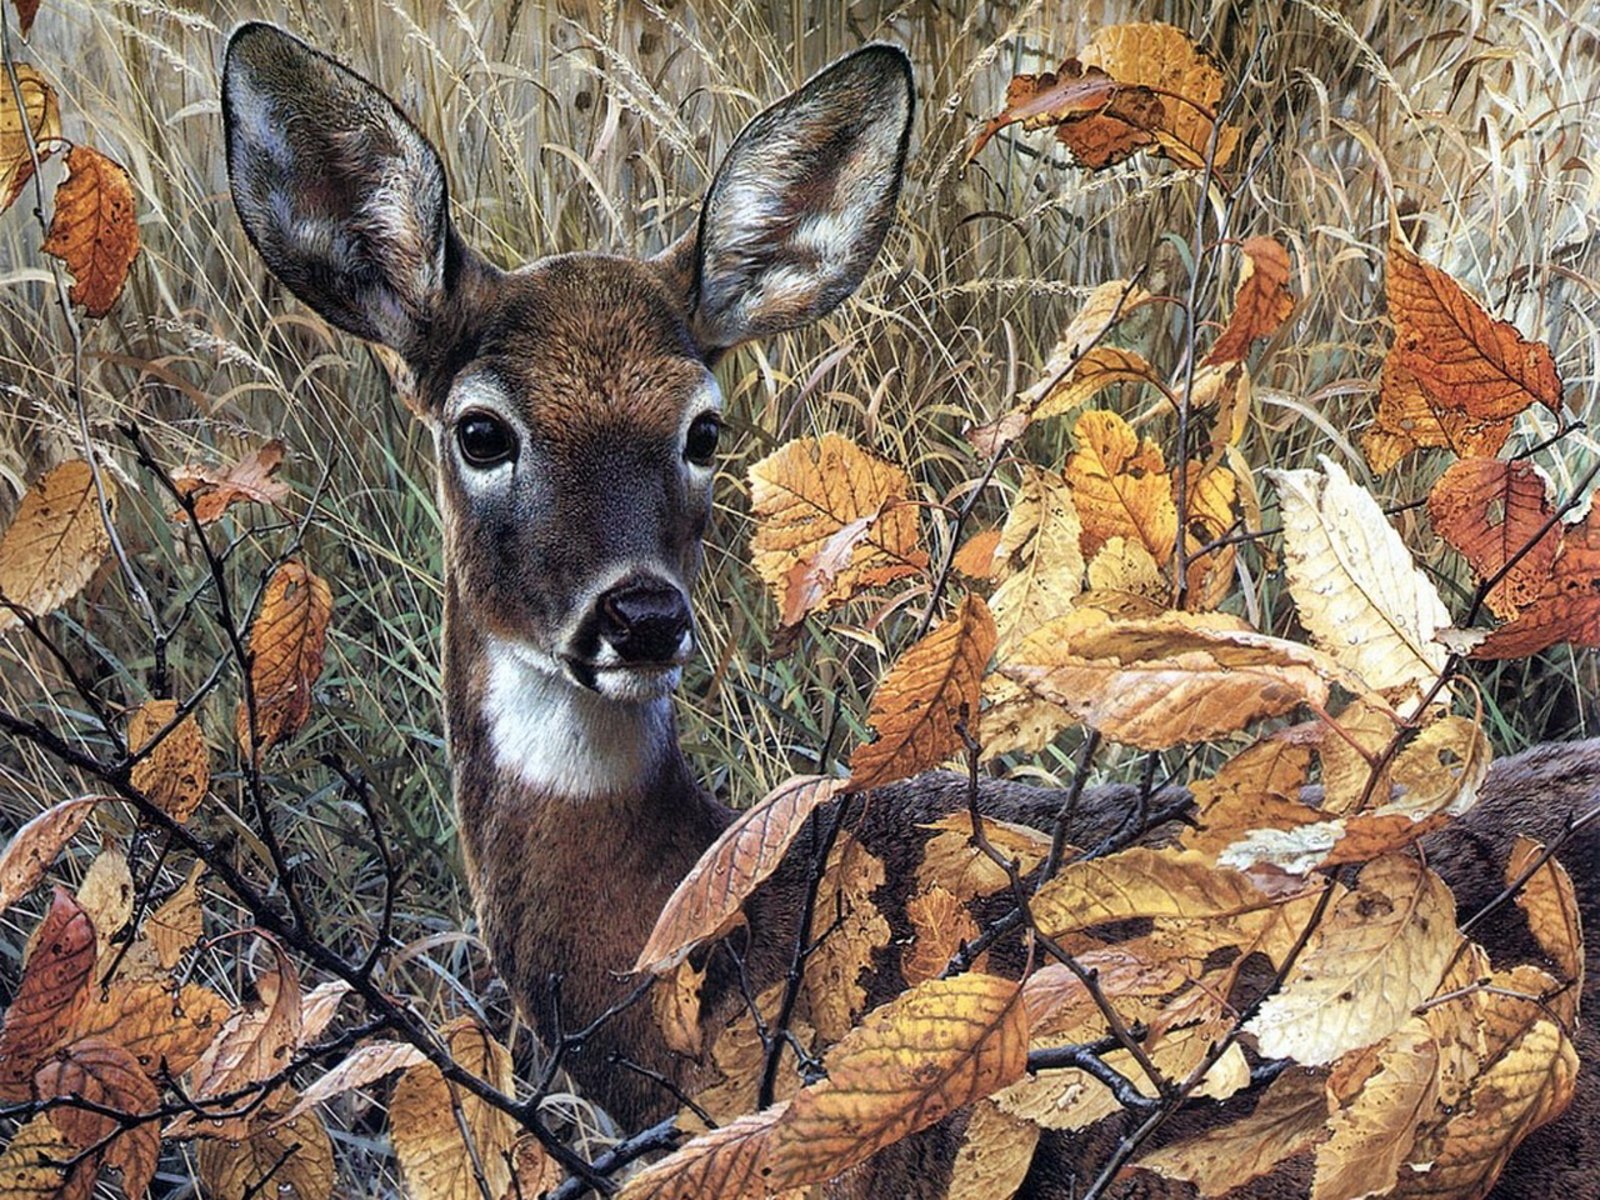 Wallpaper Deer Hunting Backgrounds For Computer 1600x1200